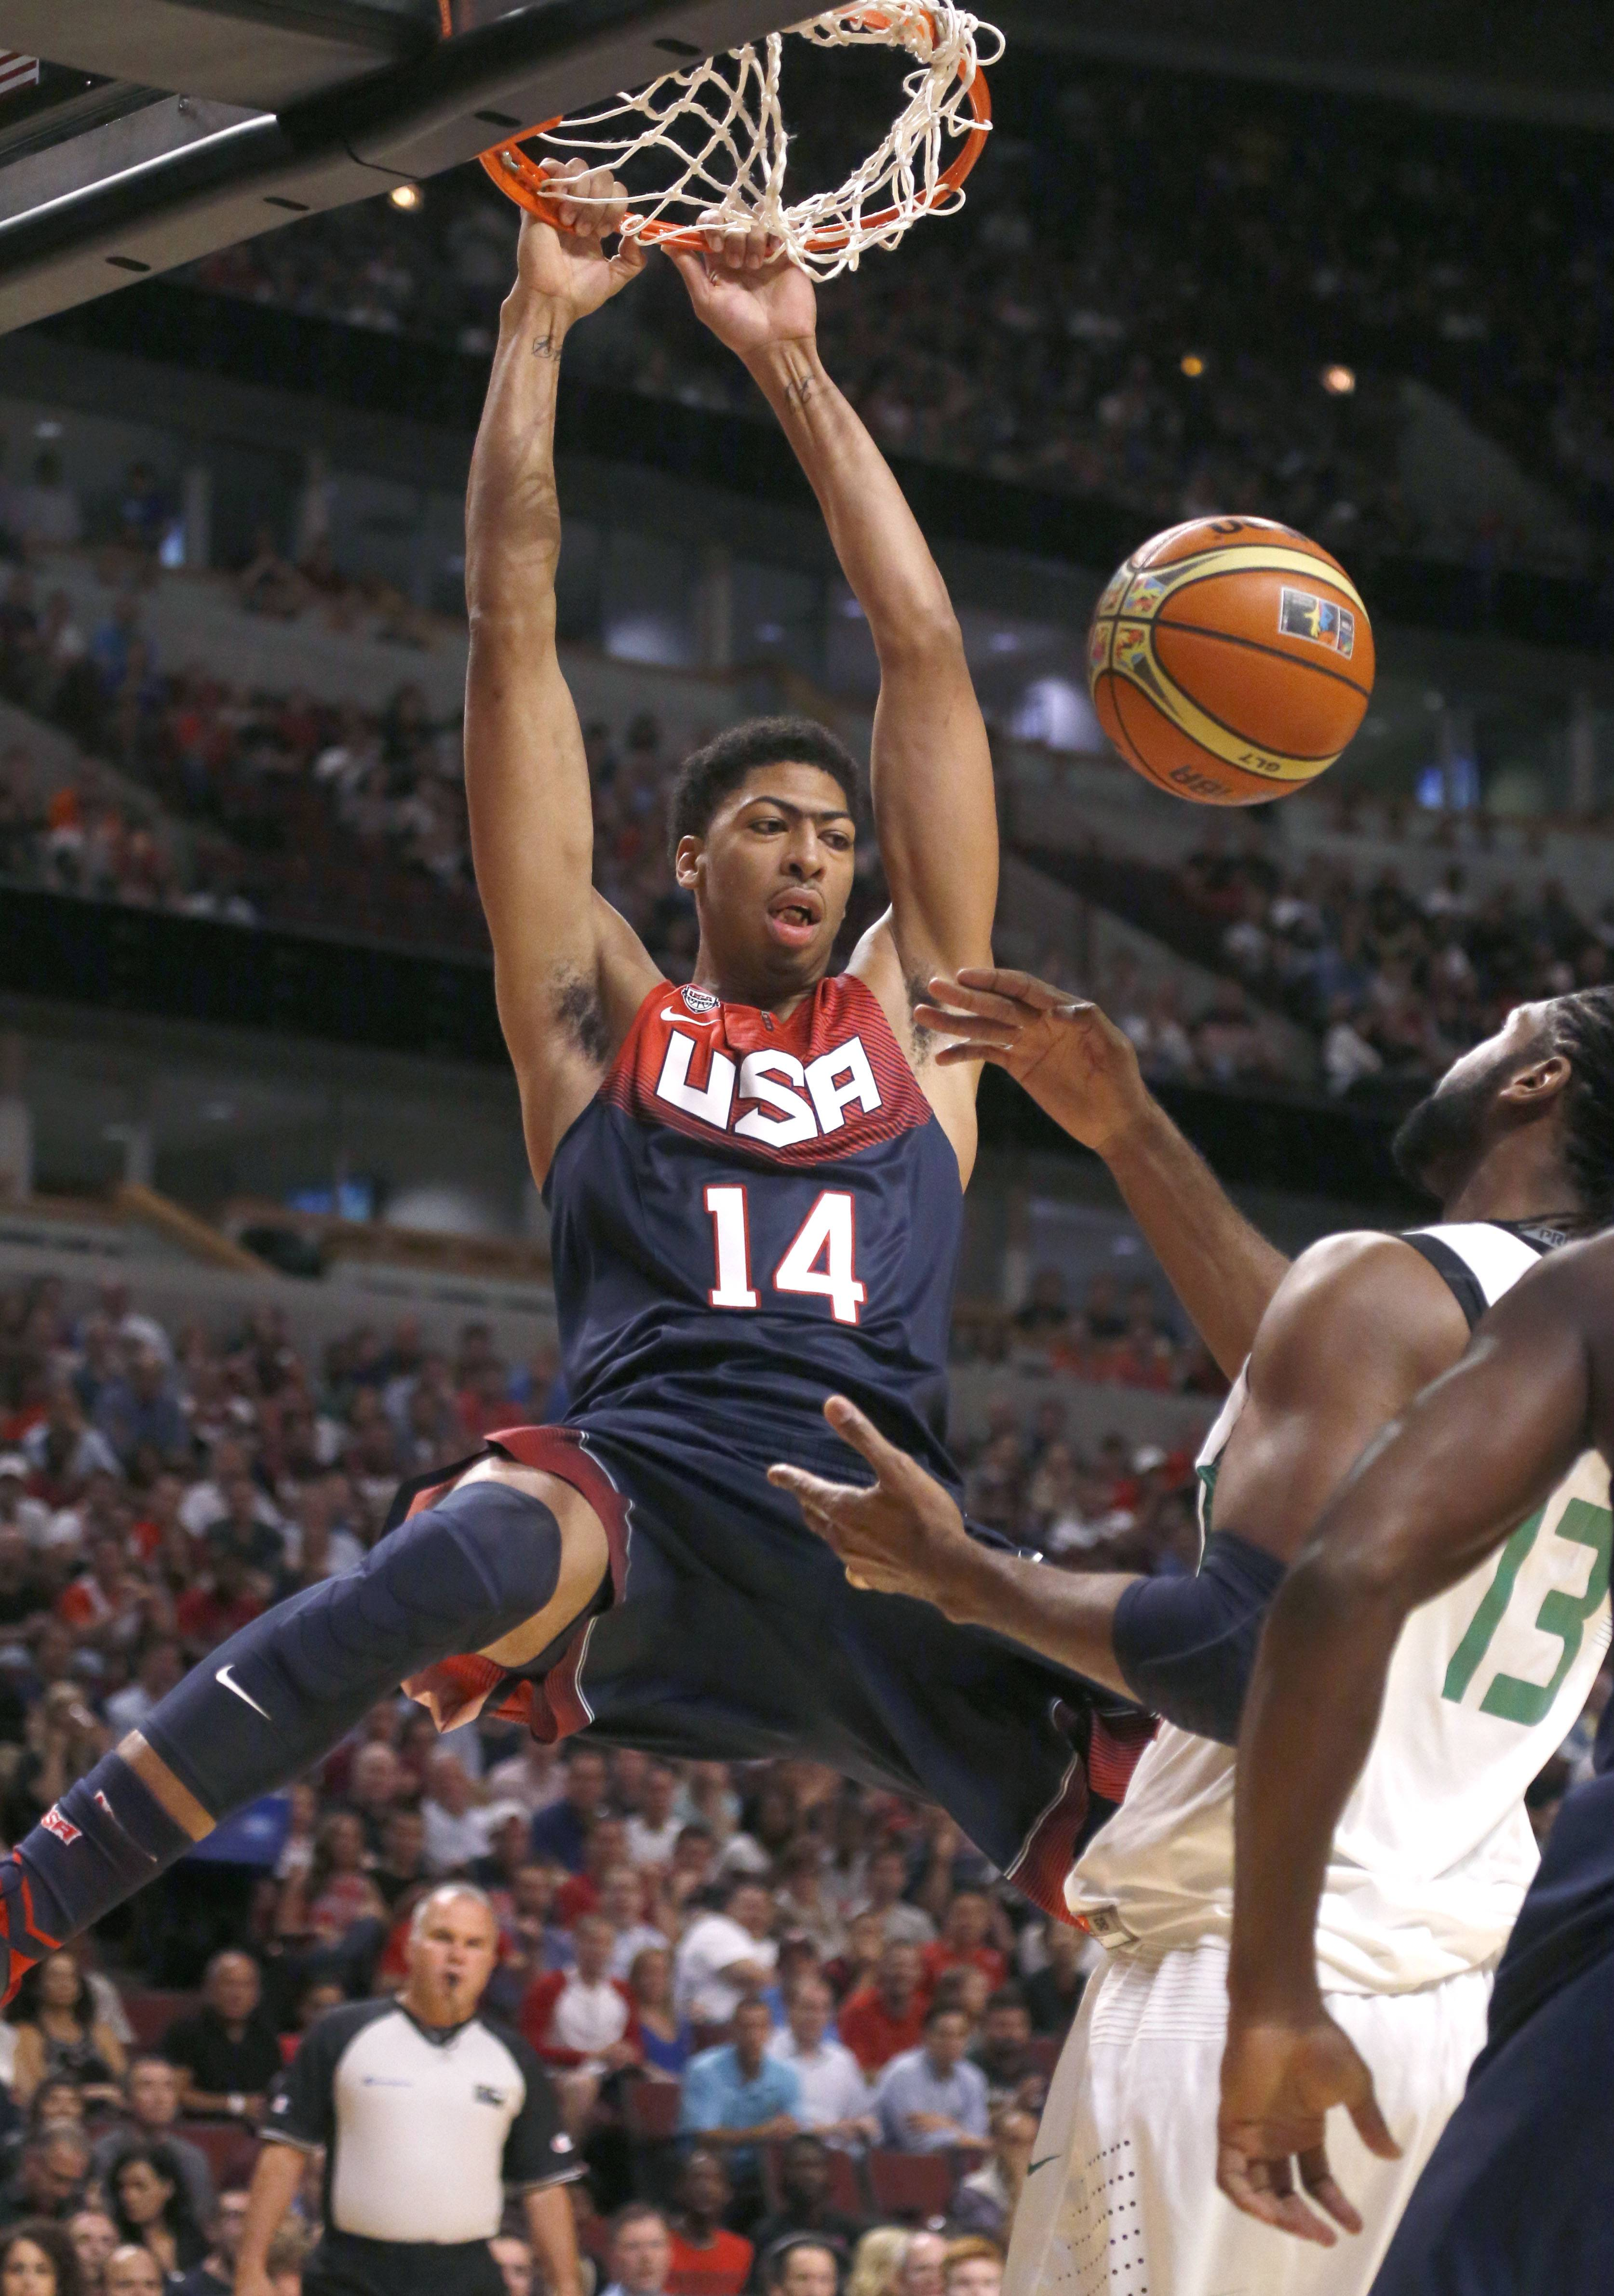 United States' Anthony Davis dunks over Brazil's Nene Hilario during Saturday's exhibition game at the United Center. Davis finished with 20 points in the U.S. victory.